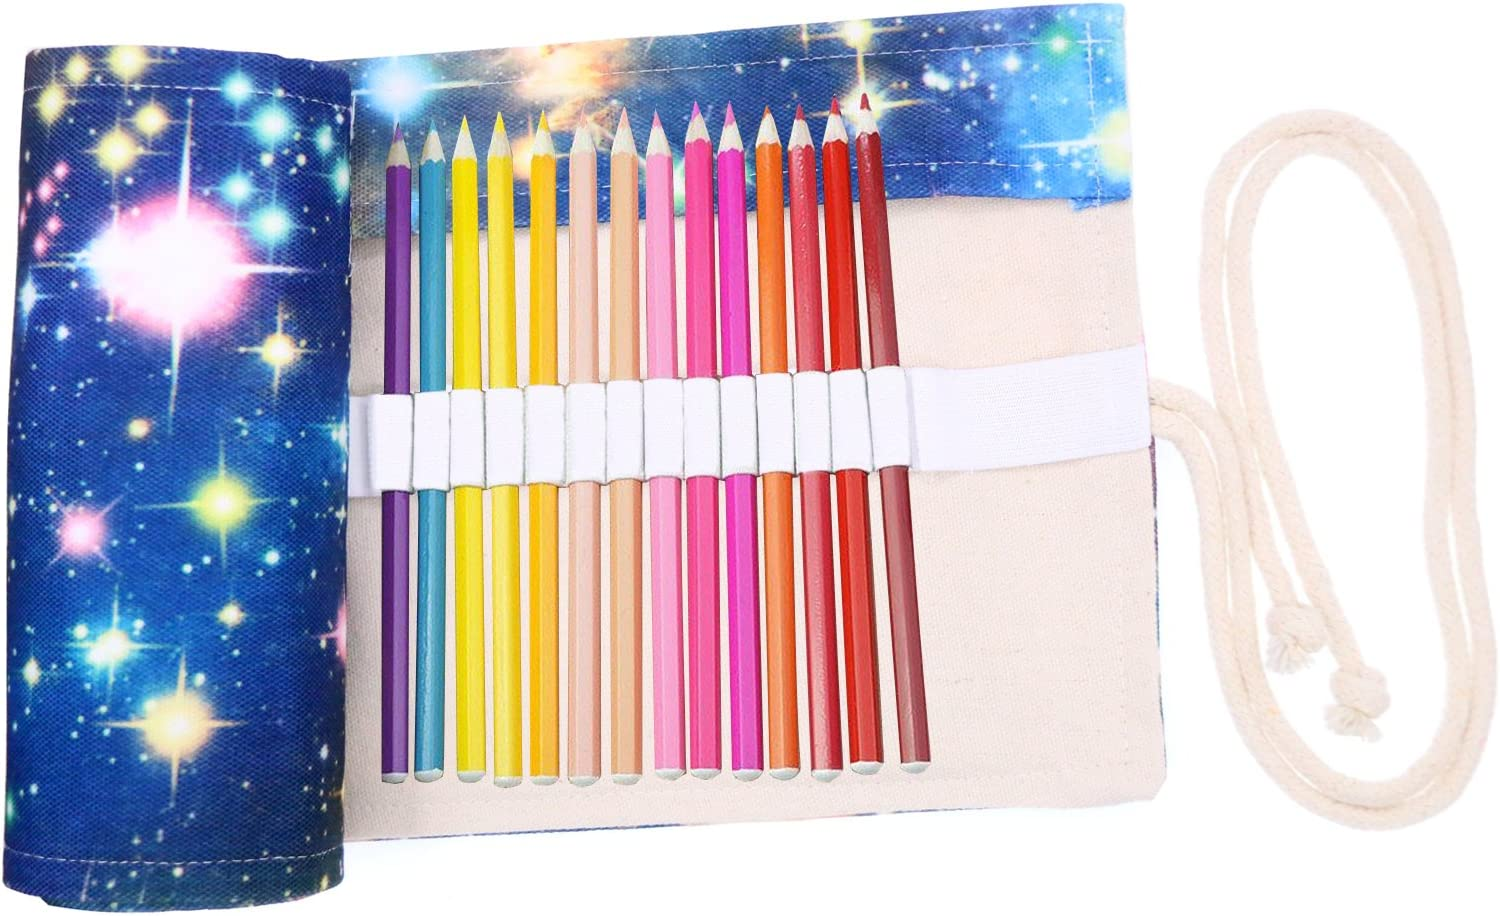 Coideal Colored Pencils Case Wrap Roll Up Holder Pouch for Artist Travel Drawing Coloring Portable Canvas Storage Organizer for Ball Pens or Pencils (72 Holes, Star Universe)